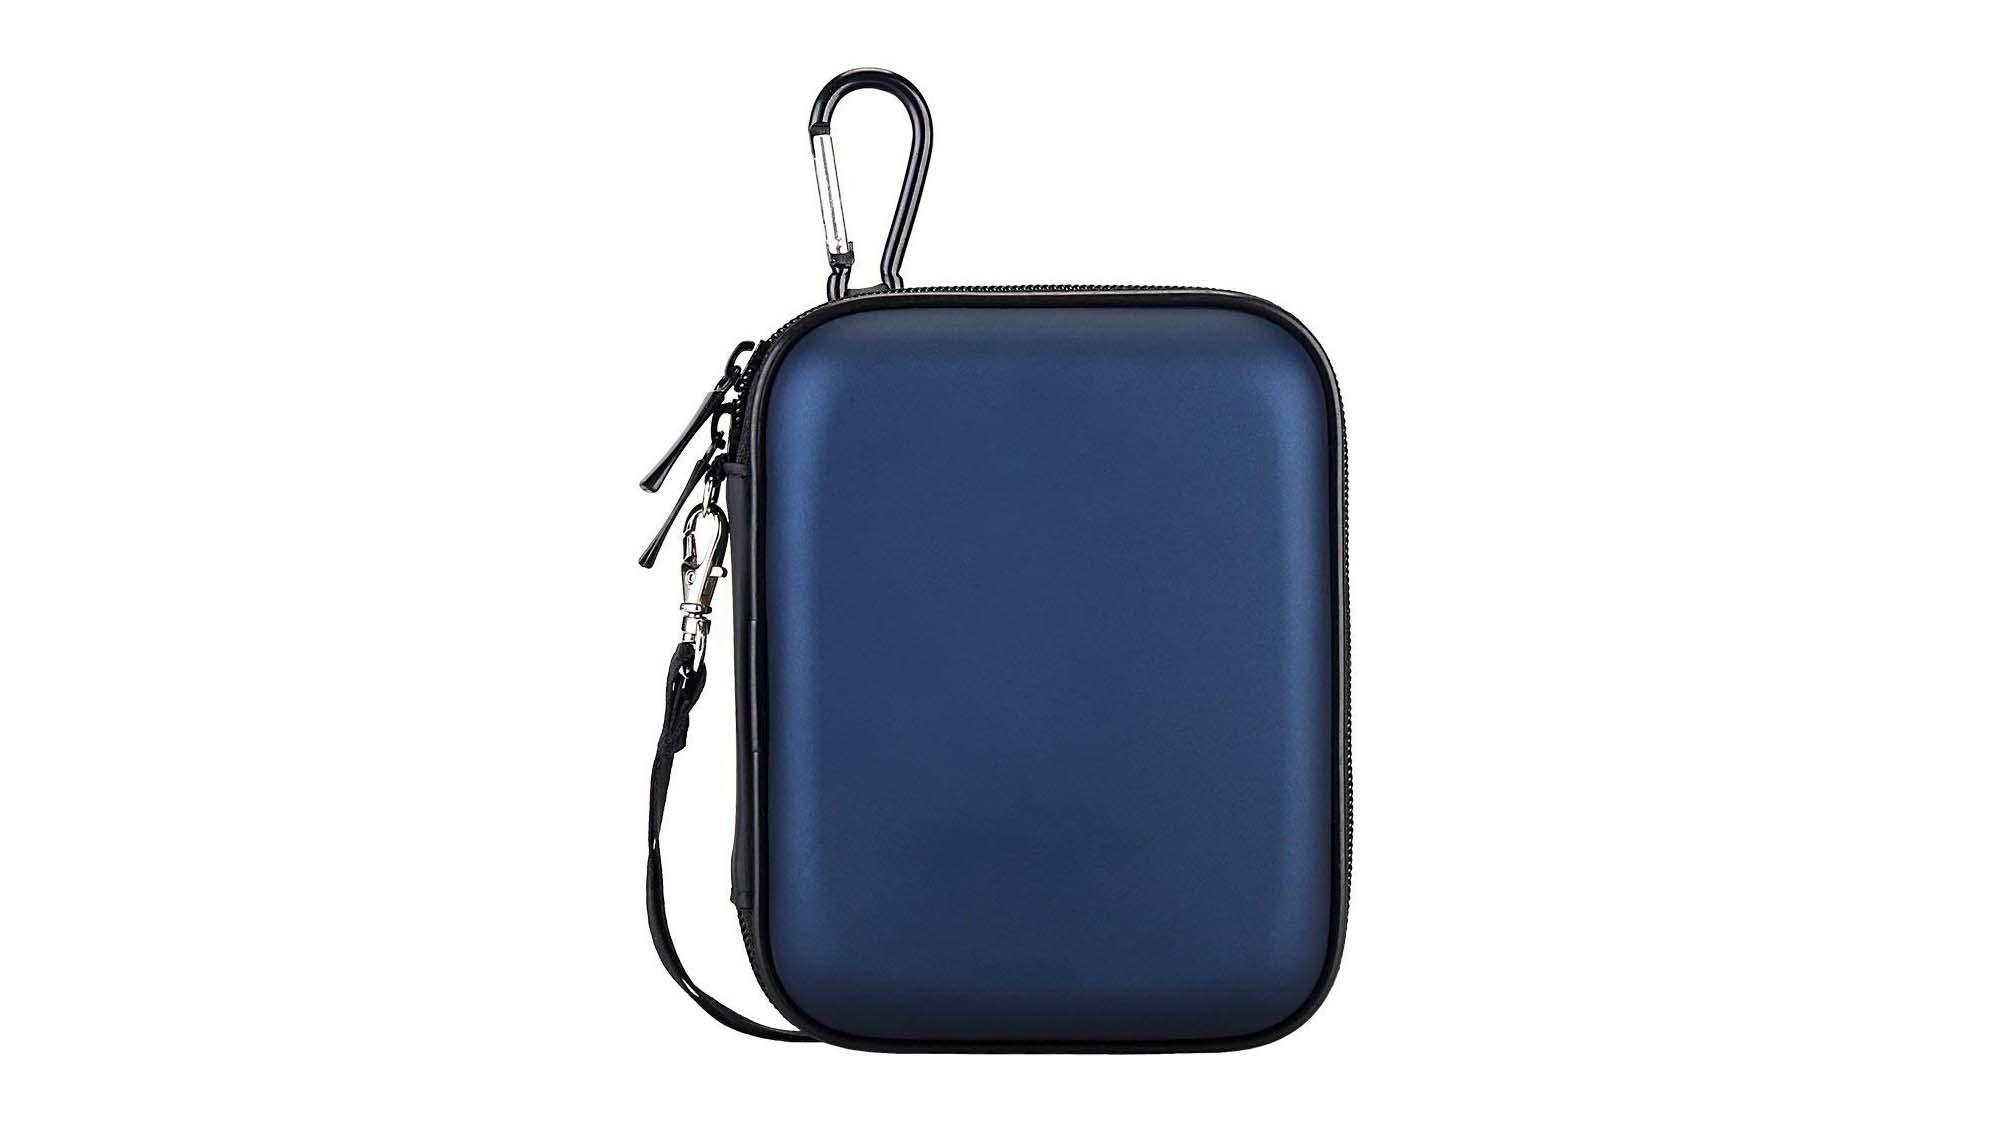 Pu leather eva shockproof carrying case for hard drive-3